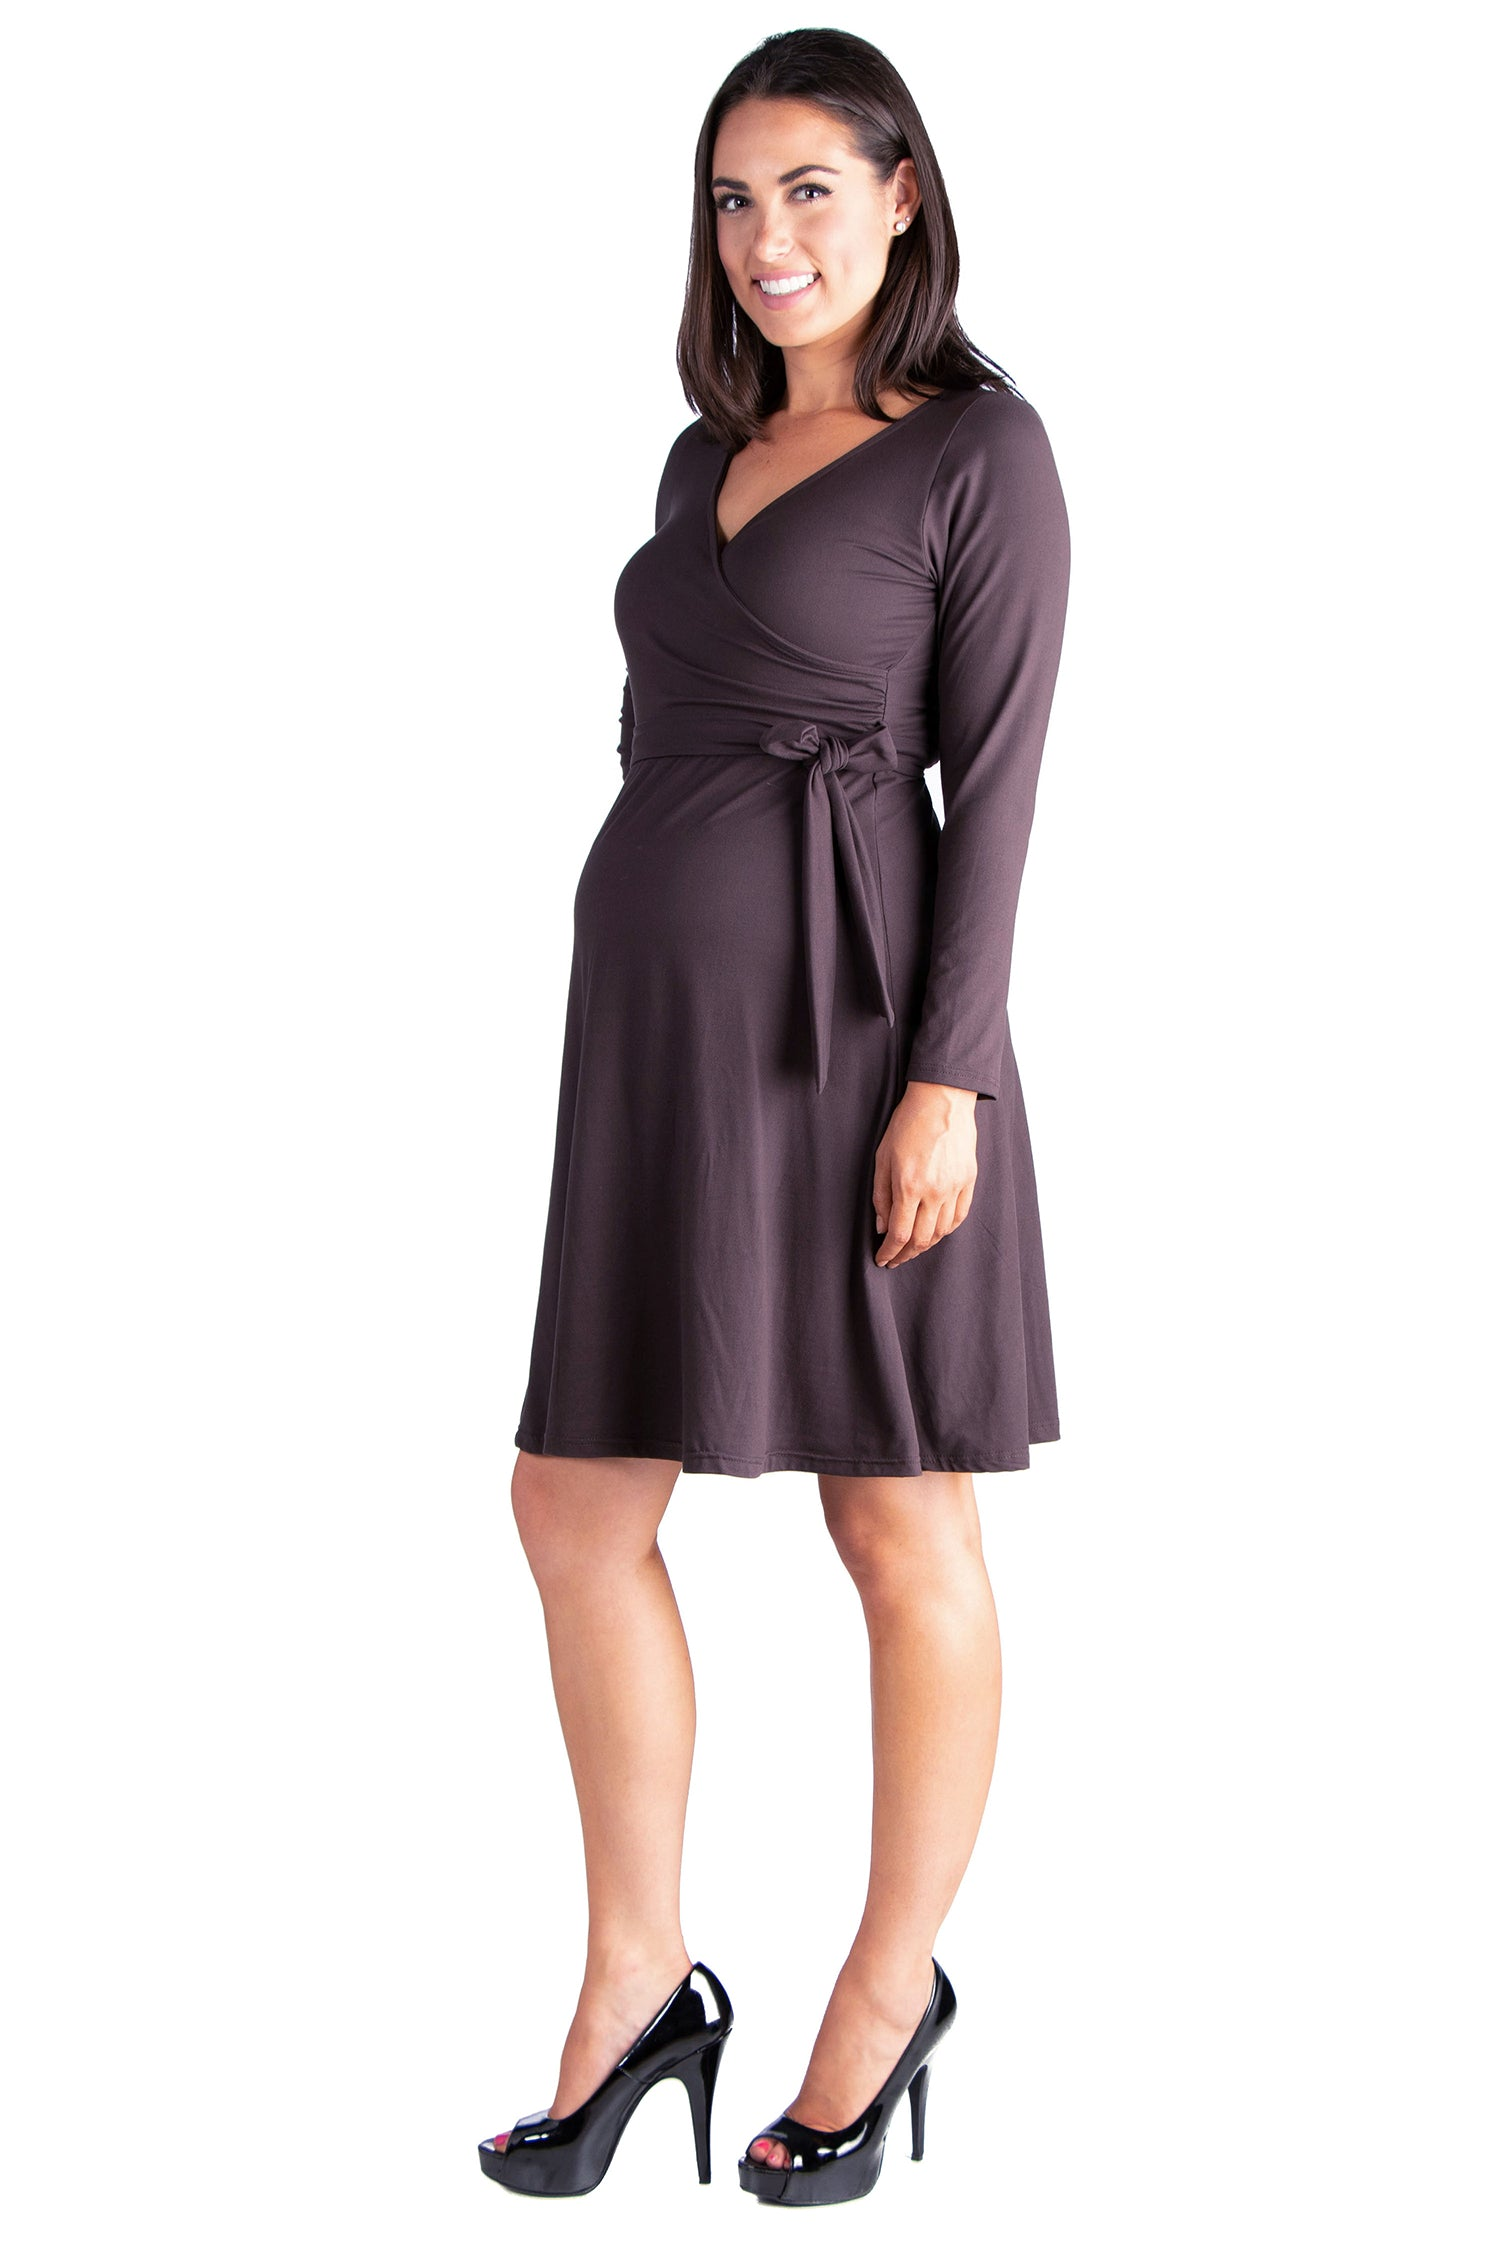 24seven Comfort Apparel Chic V-Neck Long Sleeve Belted Maternity Dress-DRESSES-24Seven Comfort Apparel-BROWN-1X-24/7 Comfort Apparel